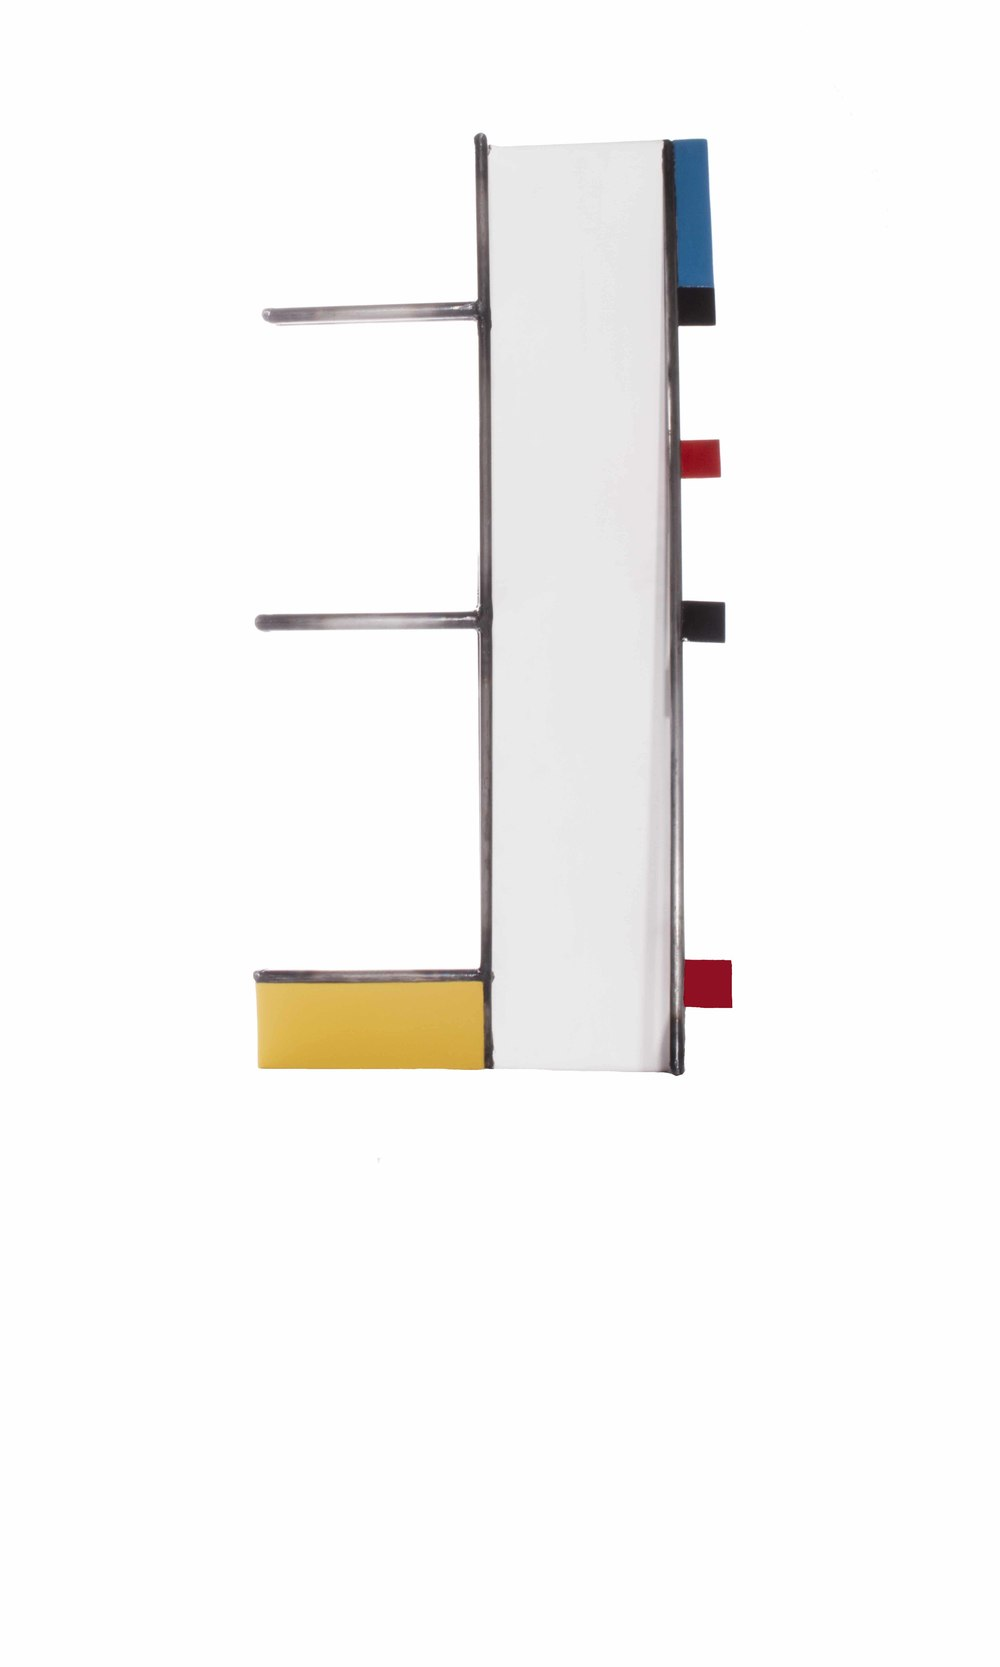 Mondrian Construction #6 (front view)